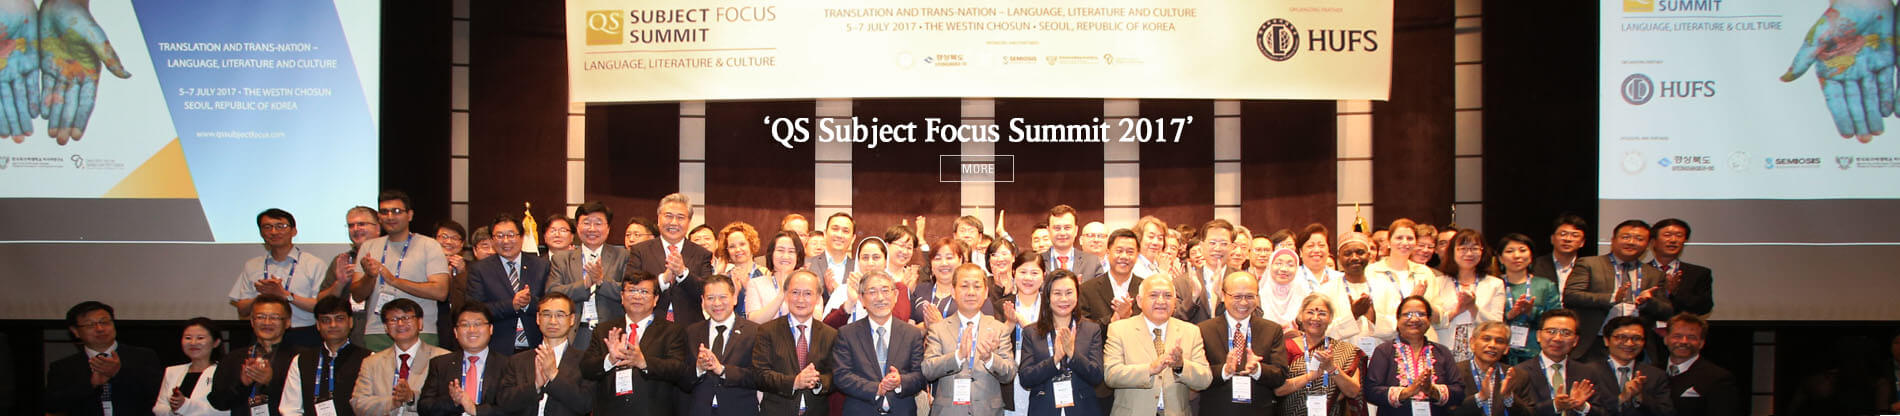 Subject Focus Summit 2017